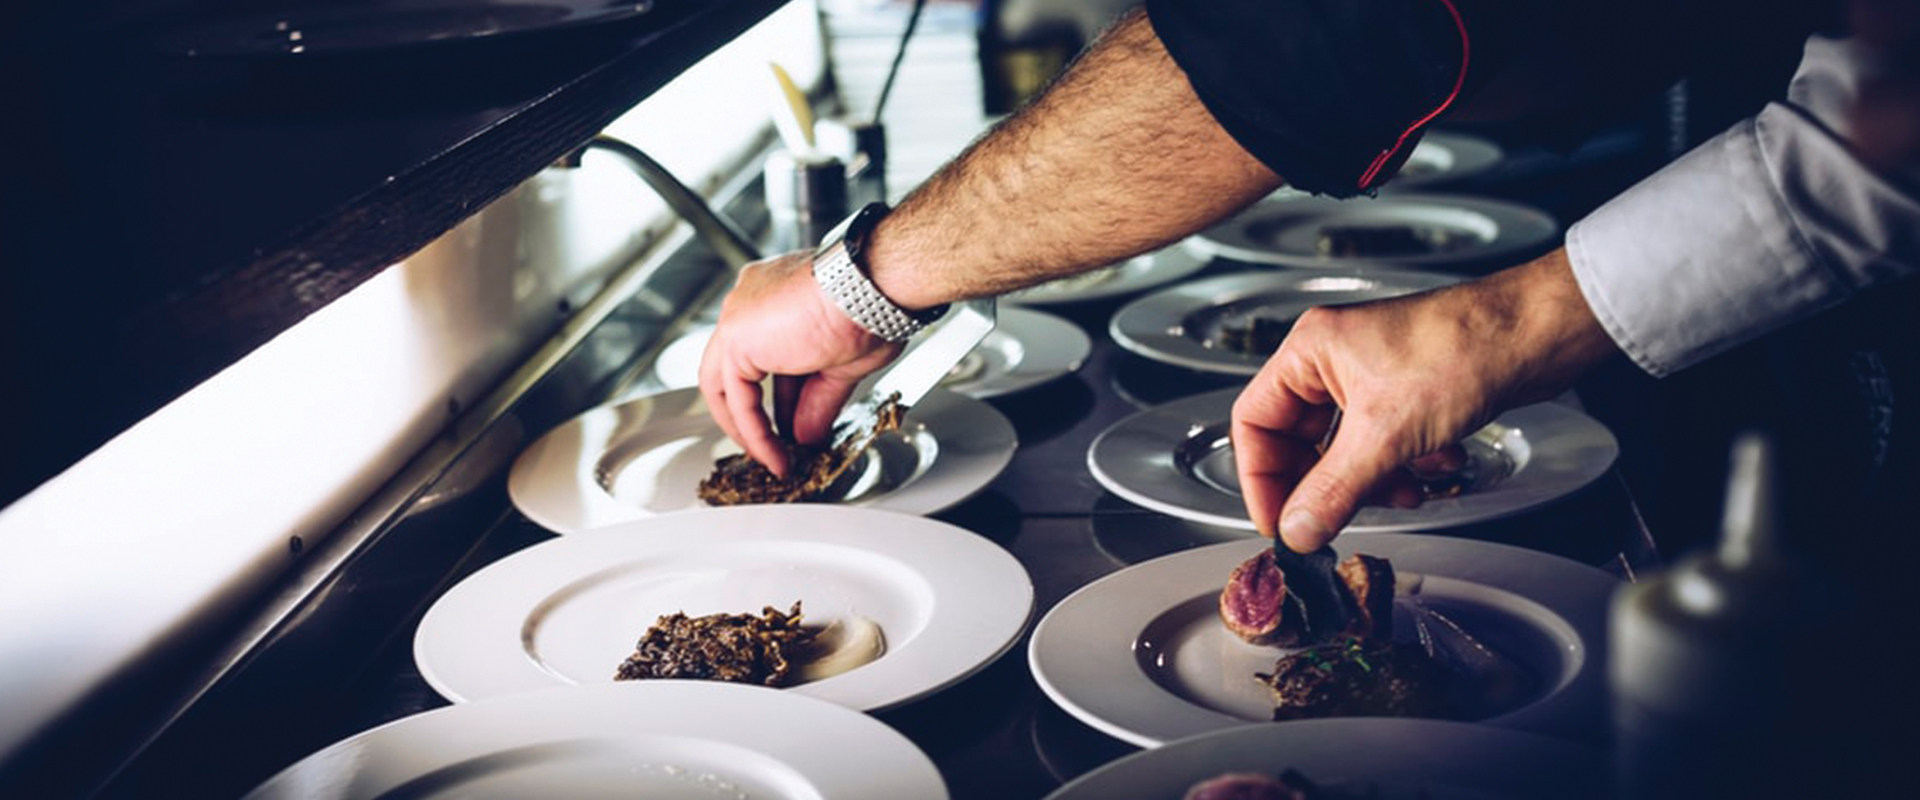 image of chefs arranging food on a plate